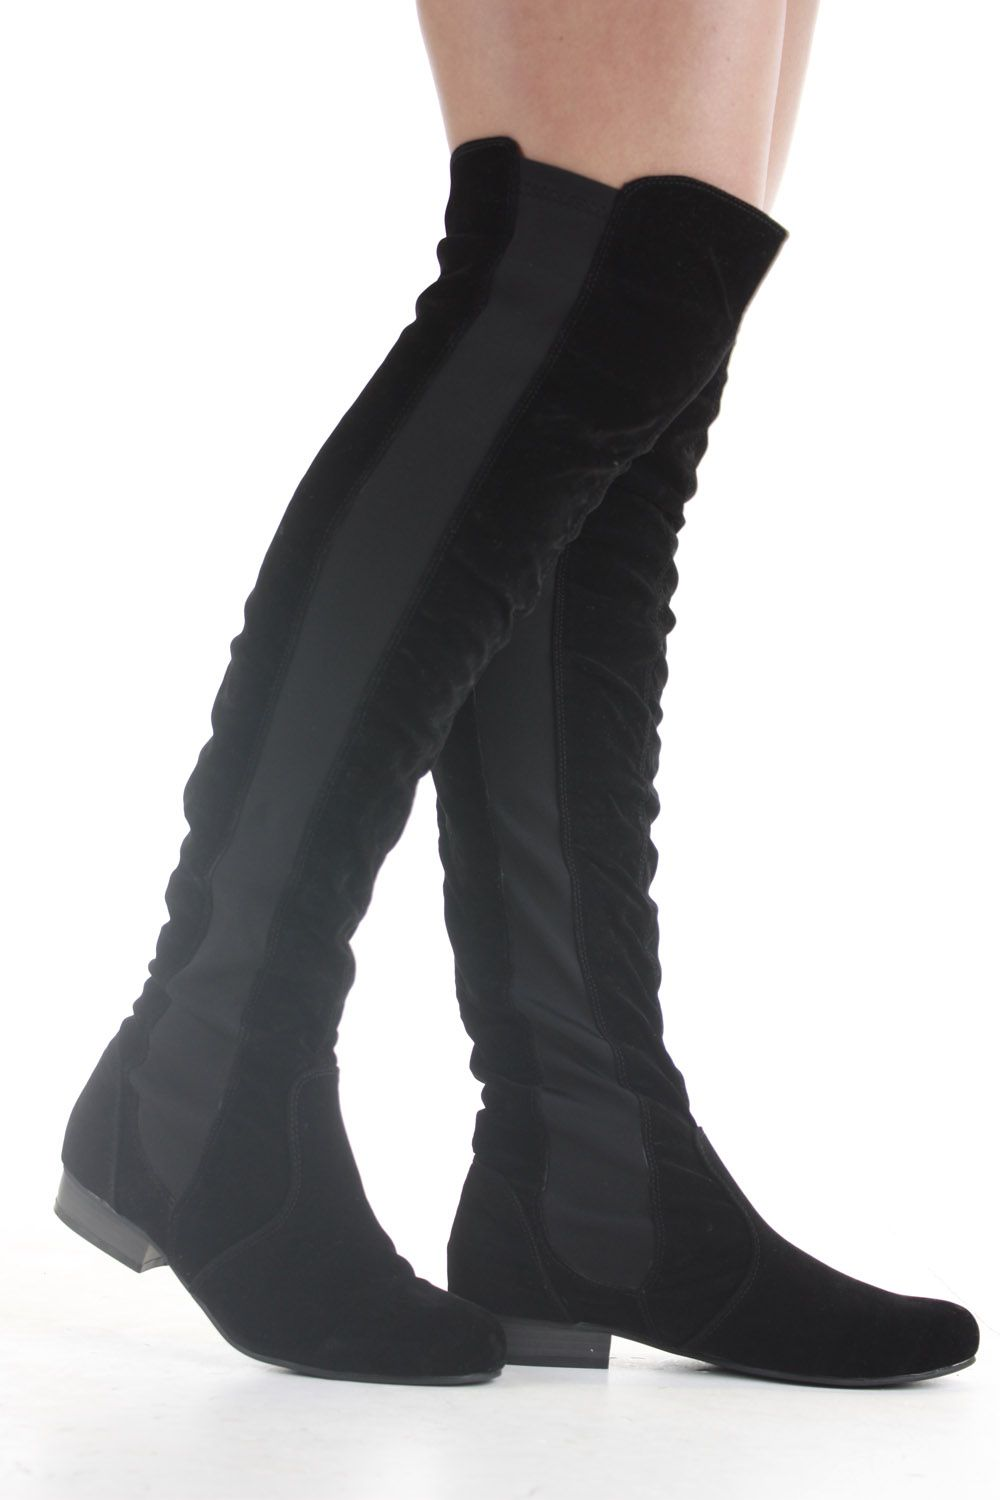 Details about Ladies Over Knee Flat Thigh High Winter Low Heel ...